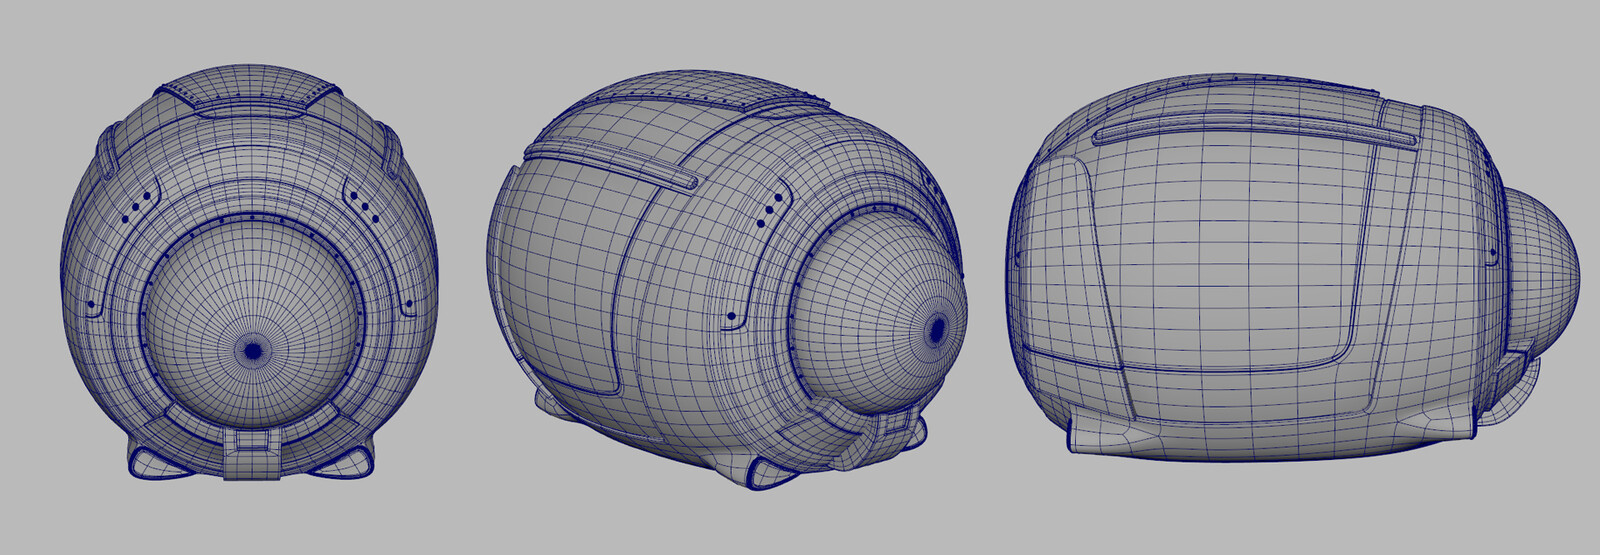 Spaceship wireframe